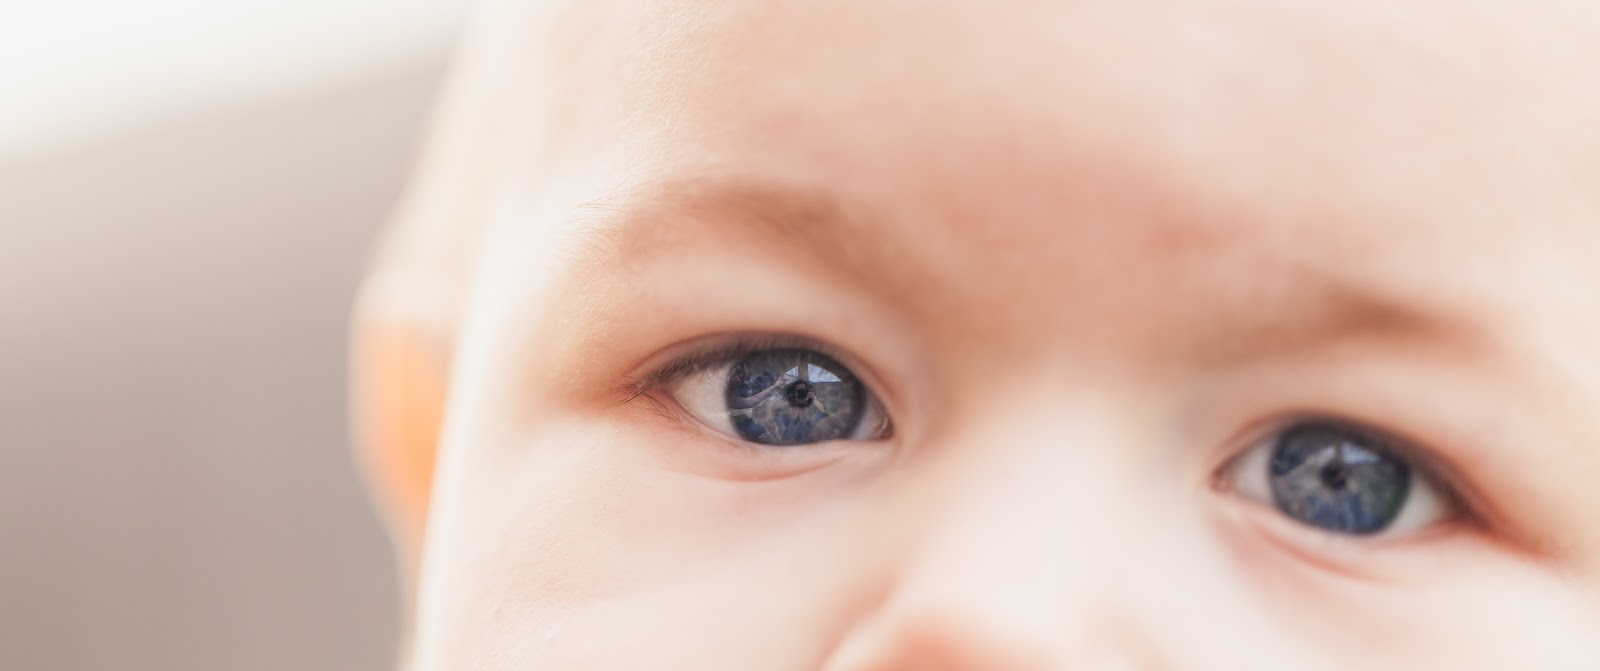 close up of baby with blue eyes